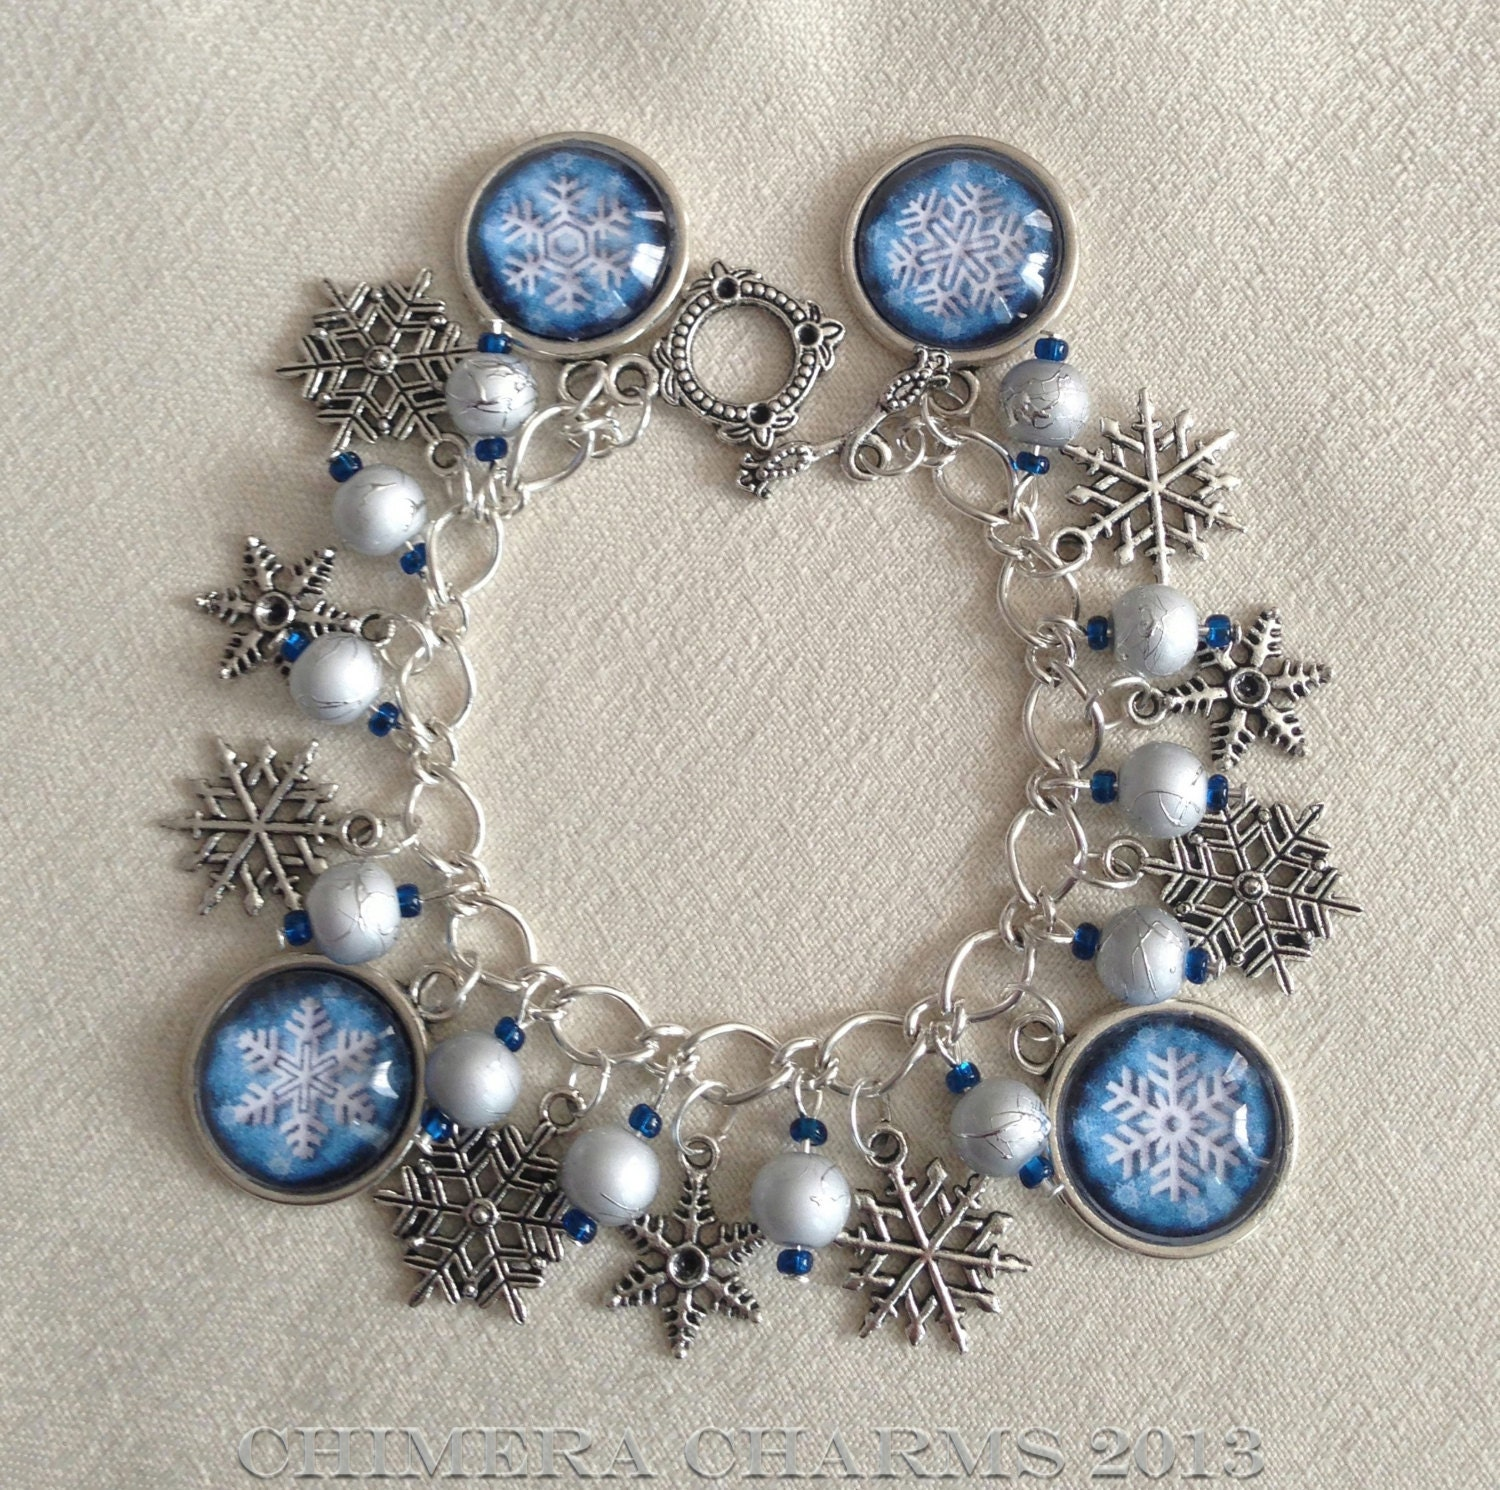 Winter Wonderland Snowflakes Charm Bracelet with Drizzled Drawbench Beads - ChimeraCharms